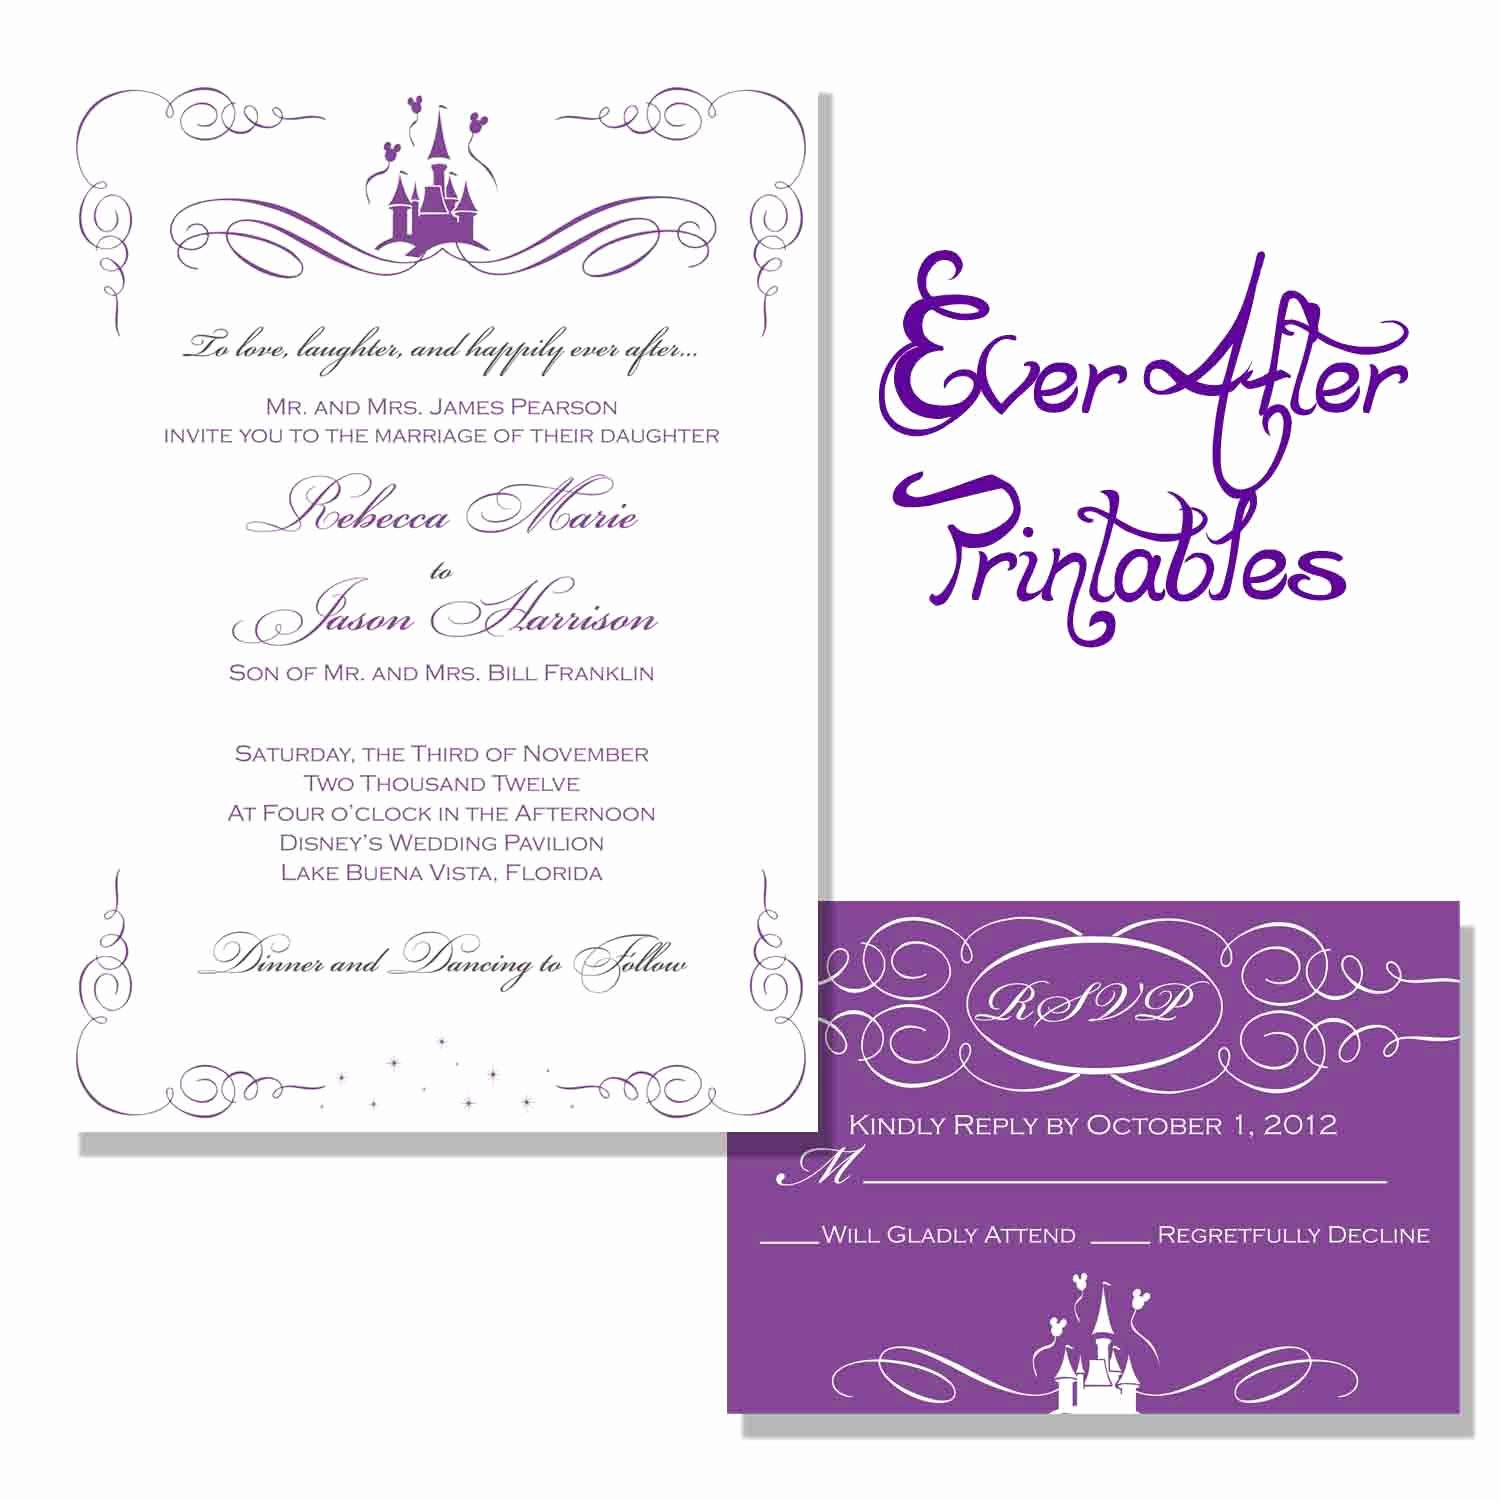 Wedding Invite Template Word Fresh Engagement Party Invitation Word Templates Free Card